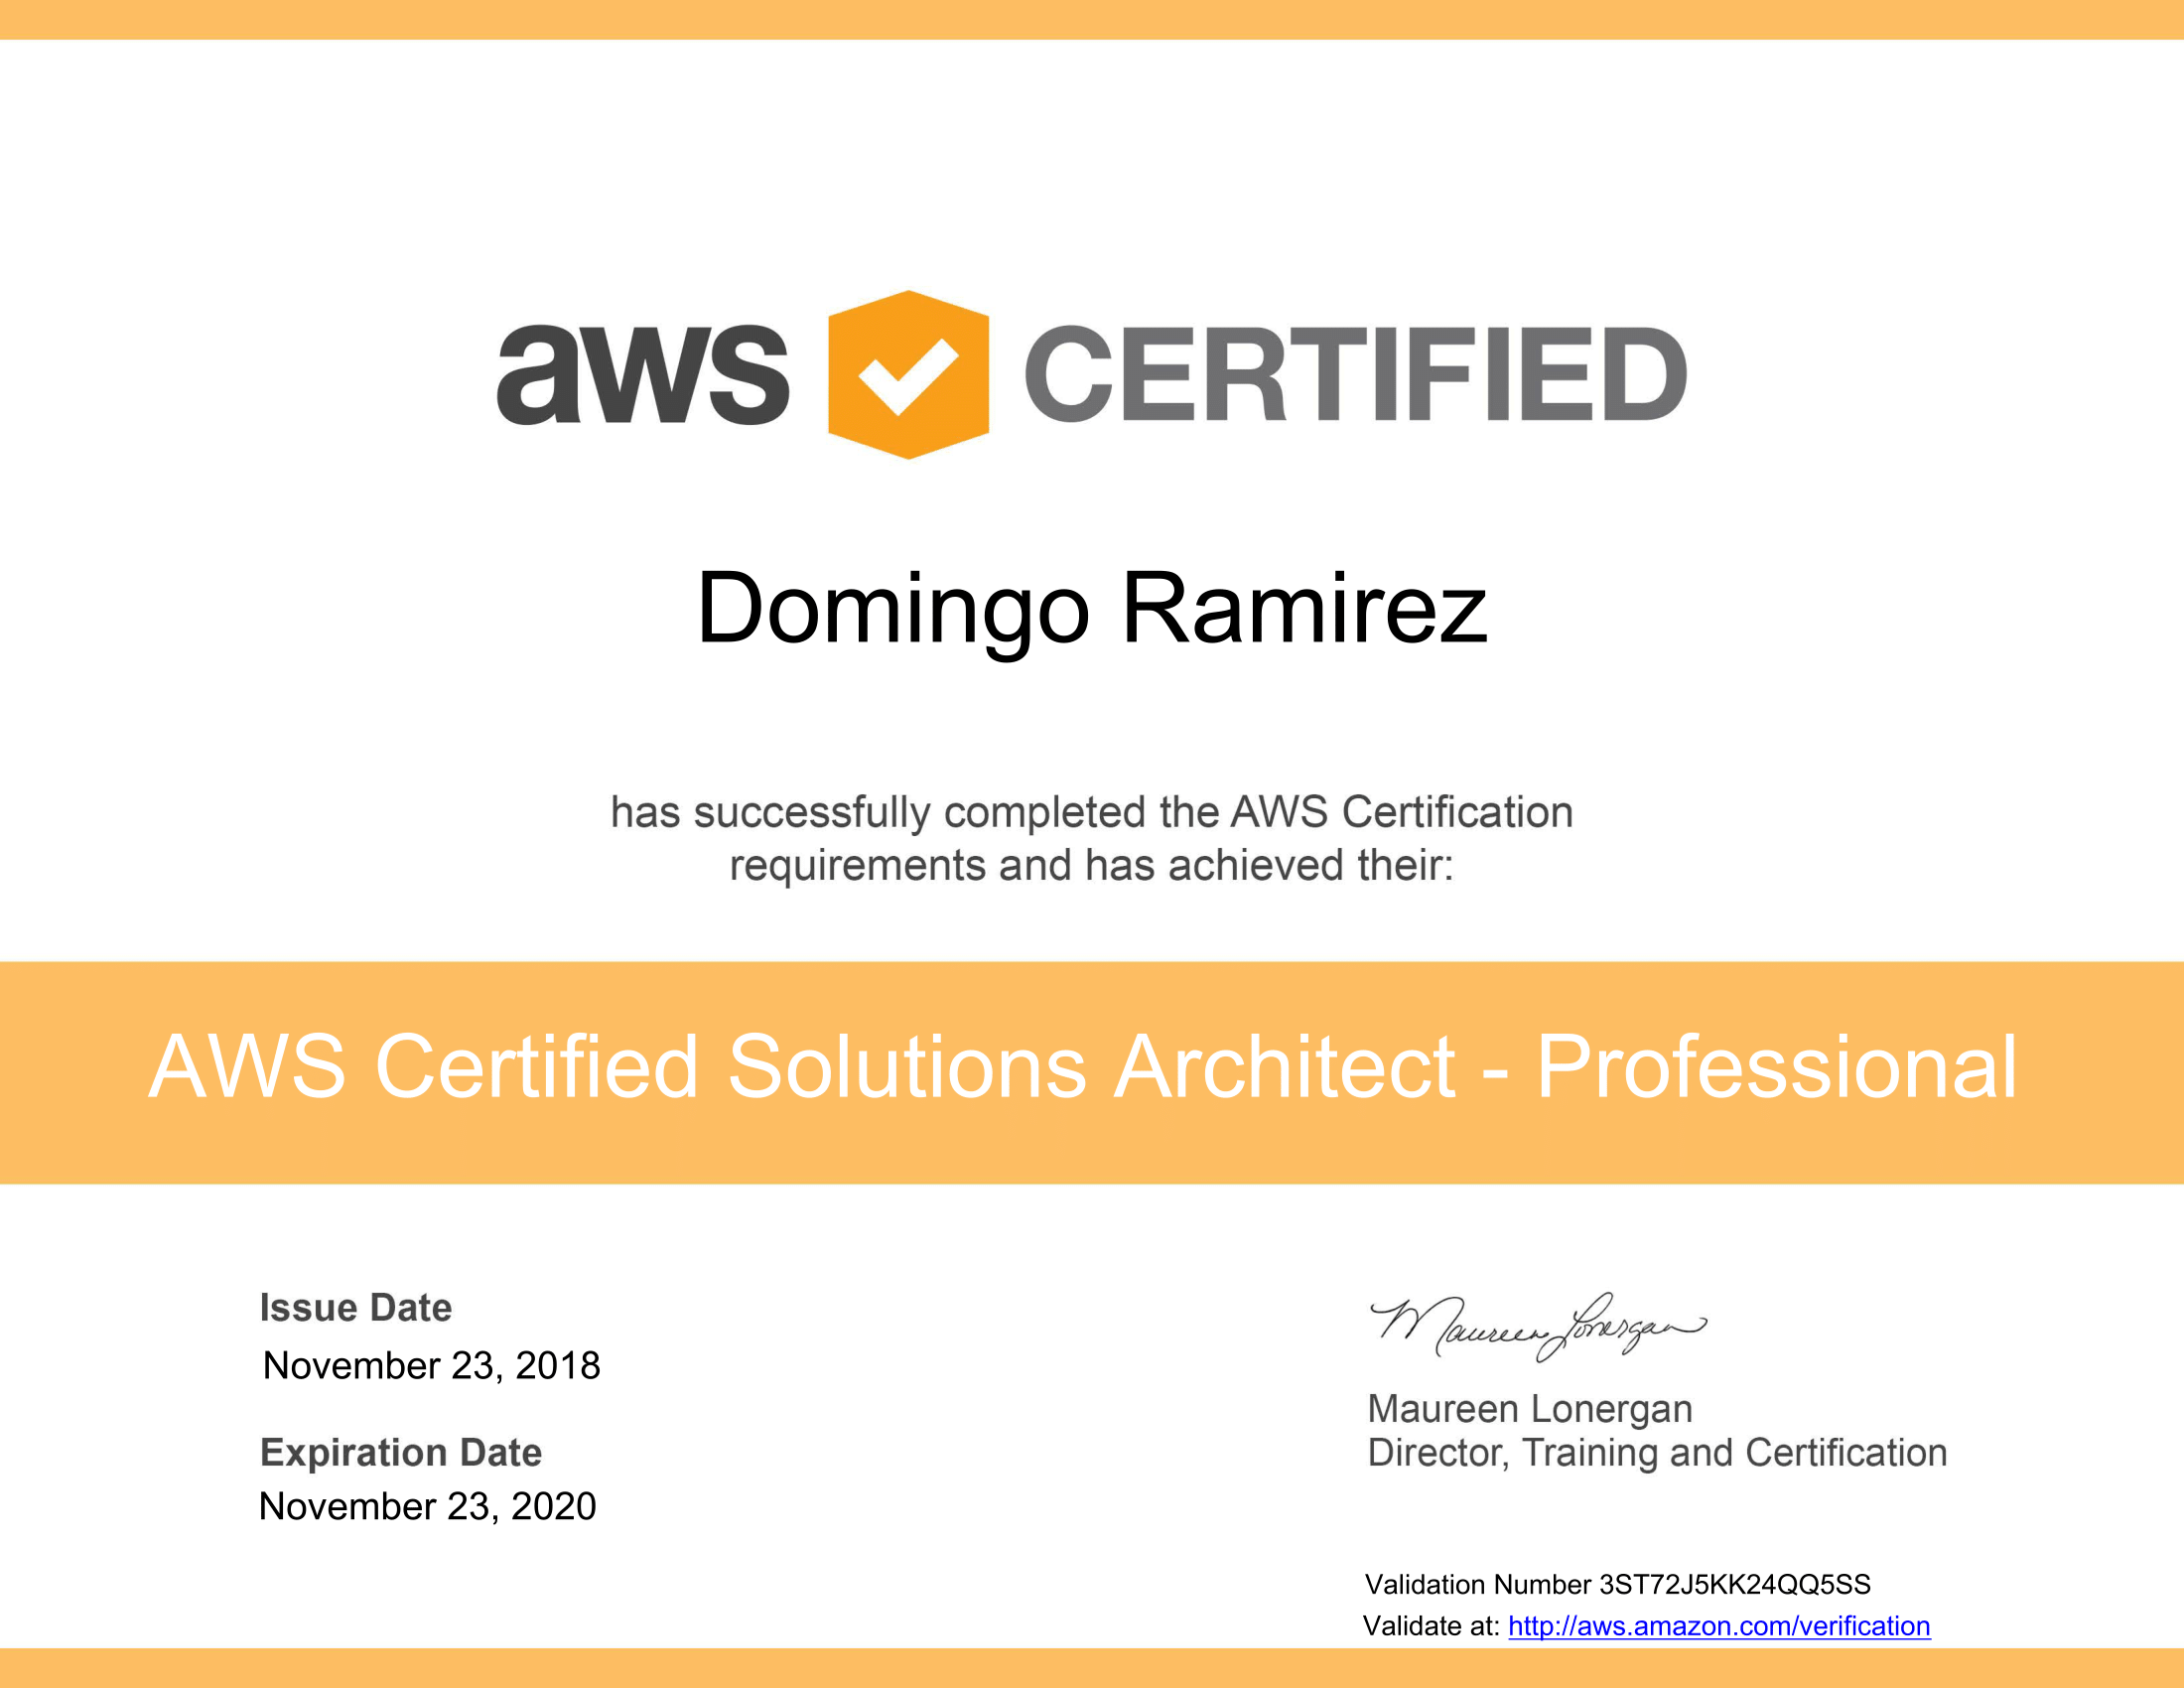 AWS Certified Solutions Architect - Professional certificate-1